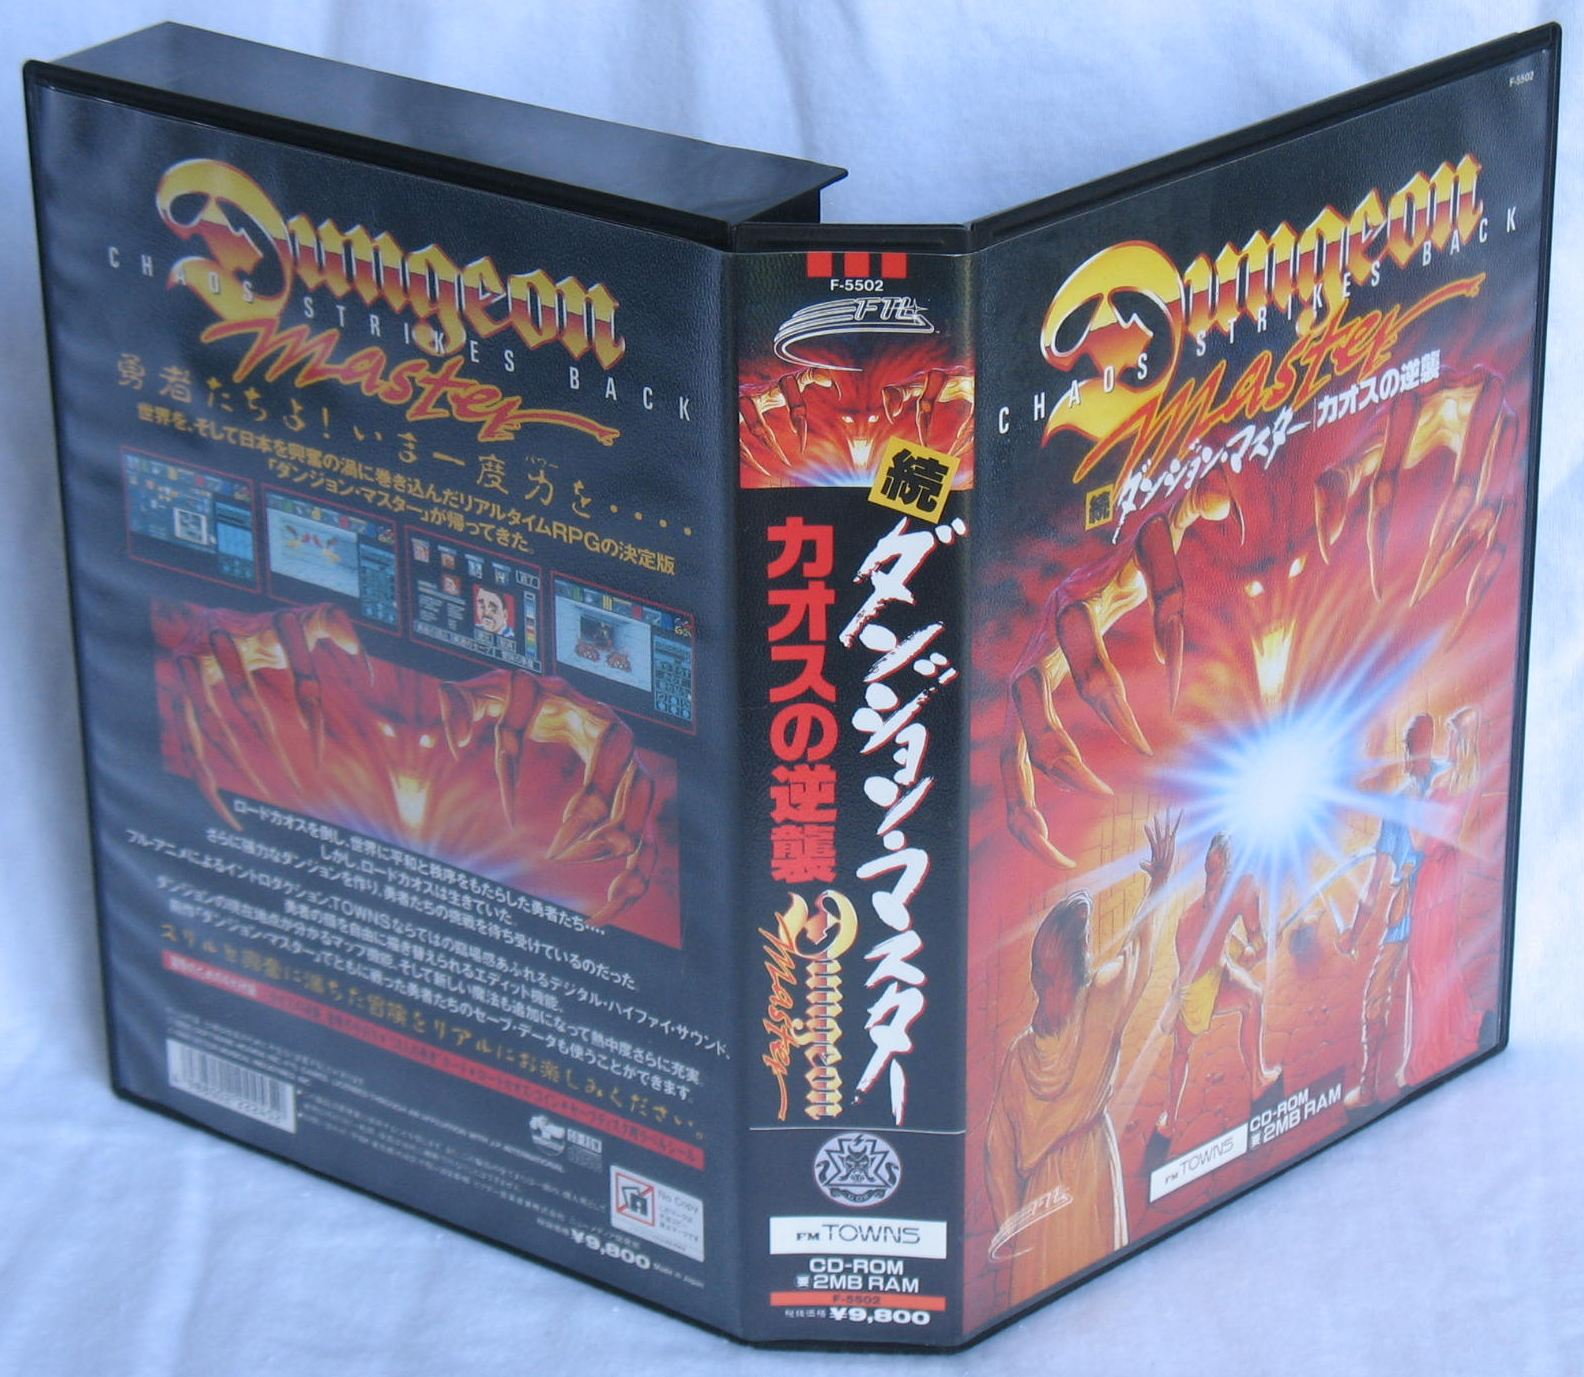 Game - Chaos Strikes Back - JP - FM Towns - Box - Front Back Left Top - Photo